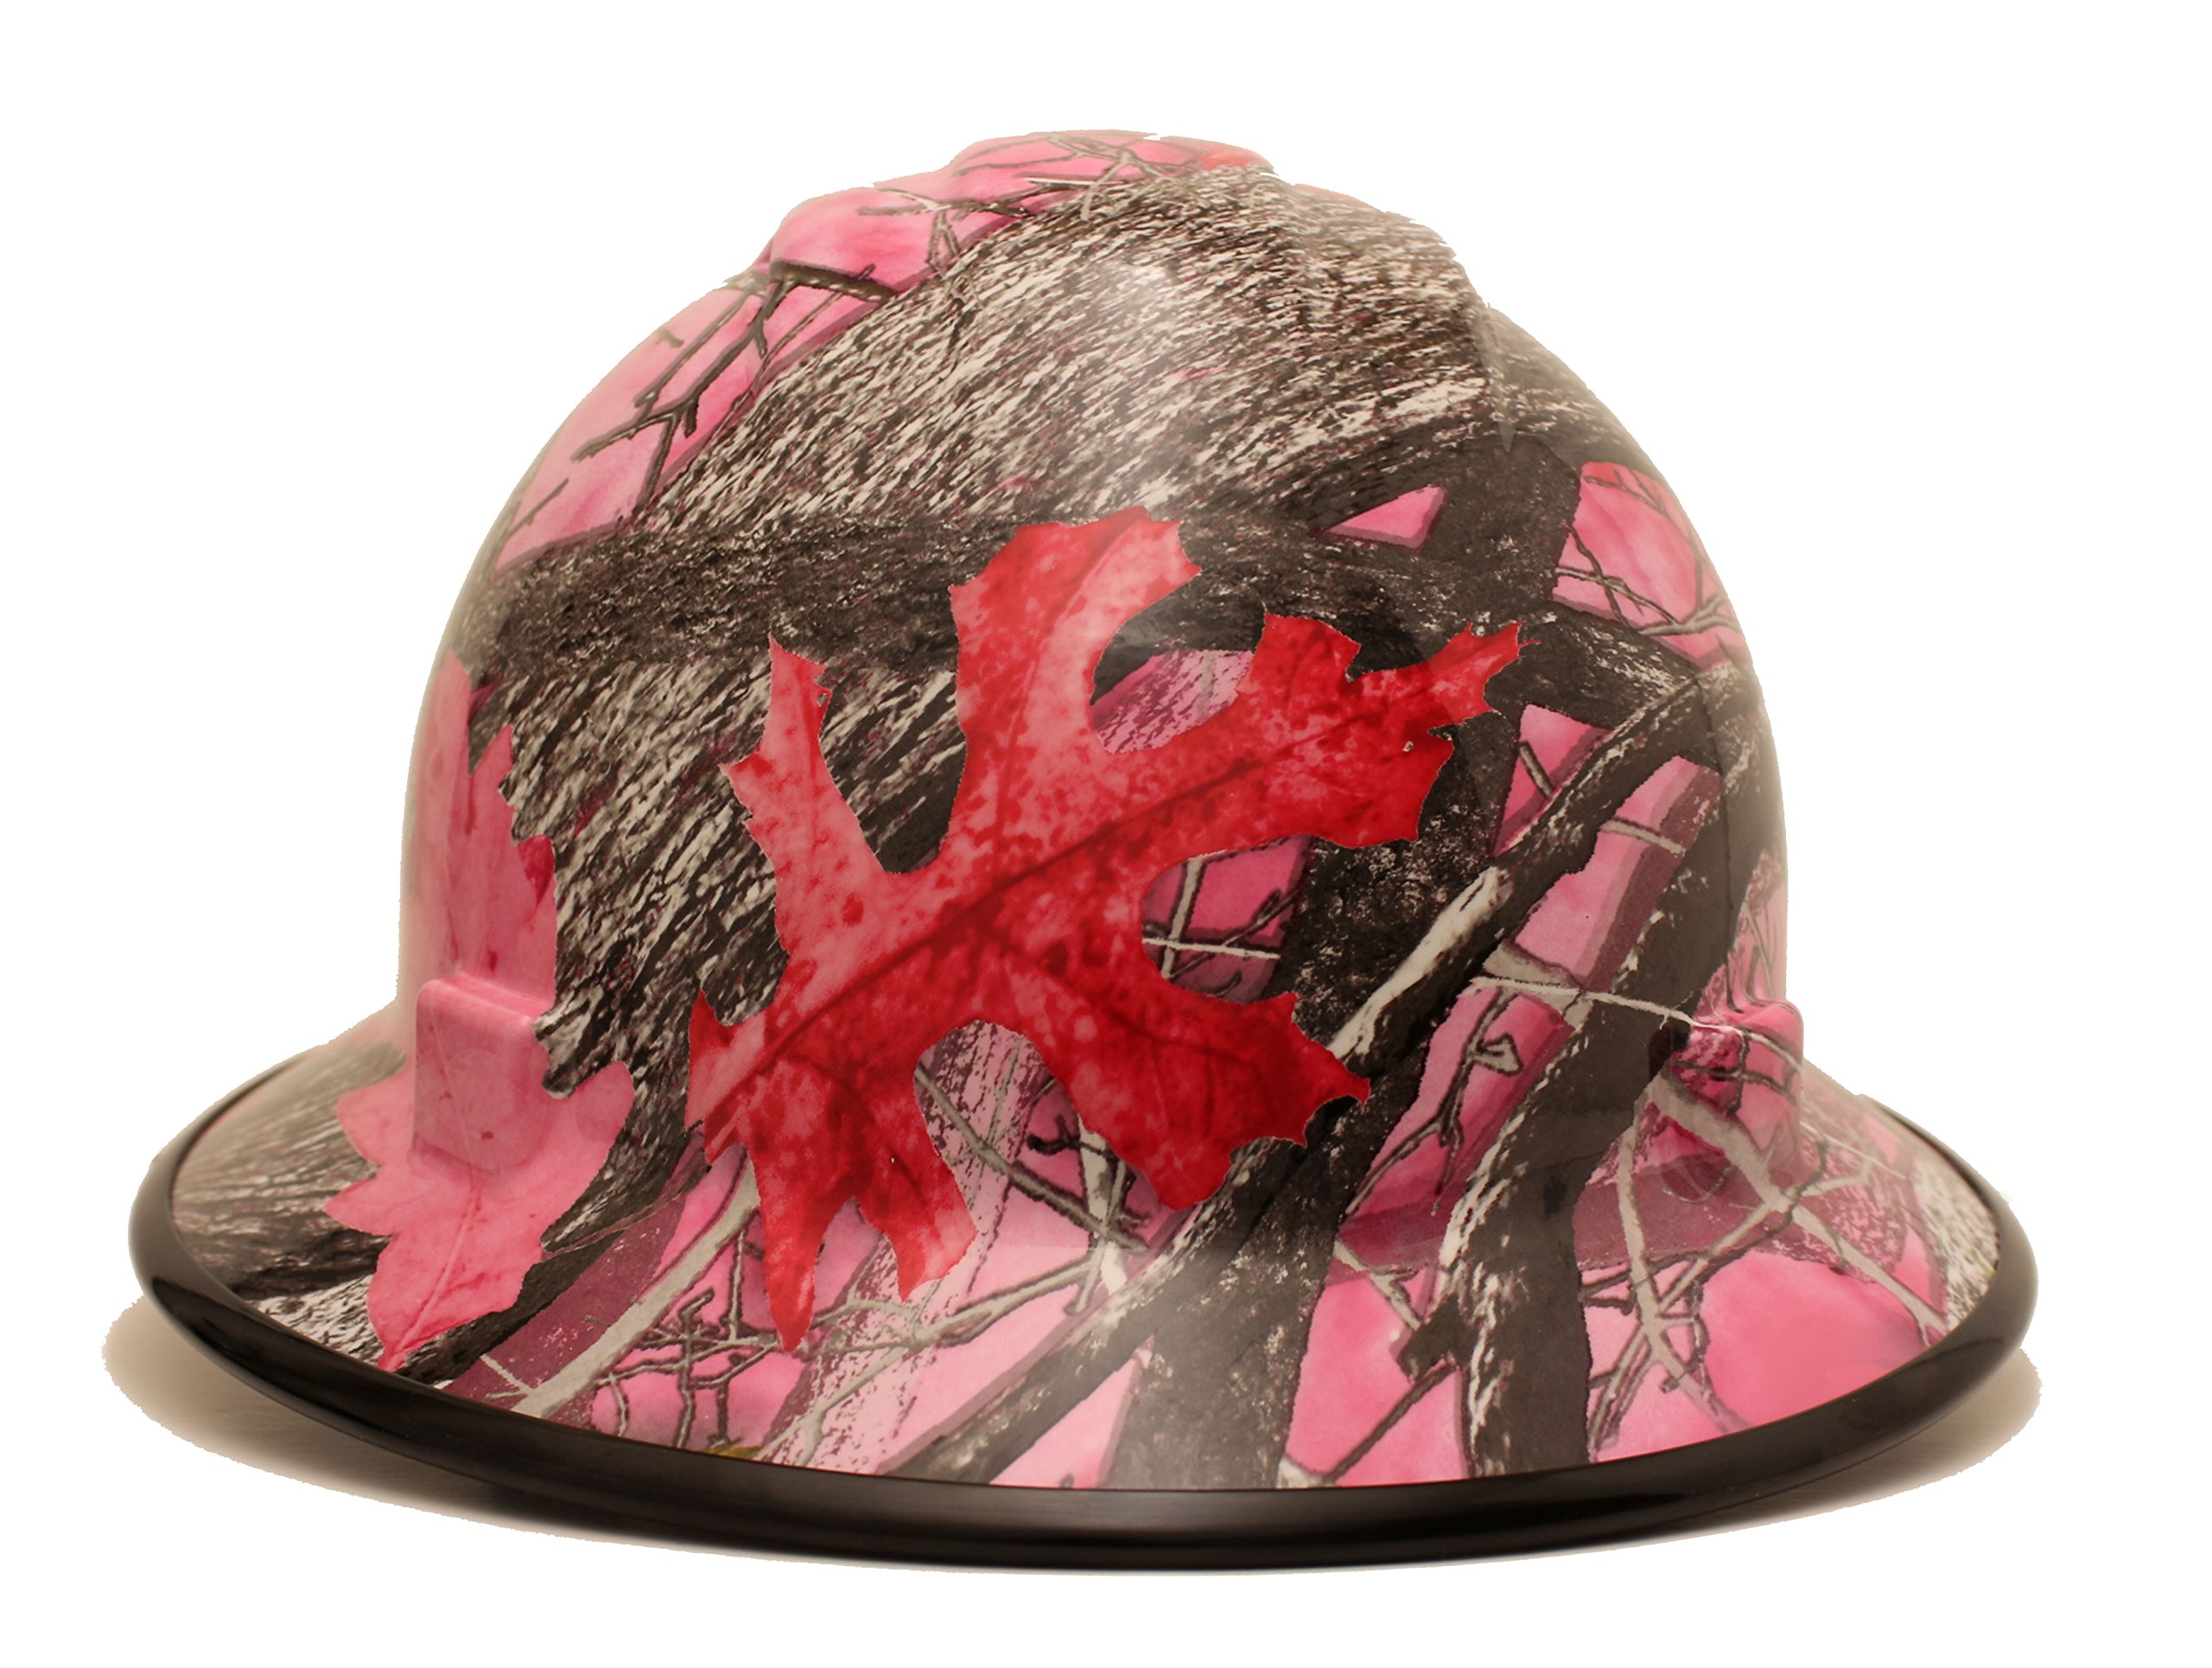 HardHatGear Custom Hydro Dipped VENTED Full Brim Hard Hat in Pink Camo - Made in USA